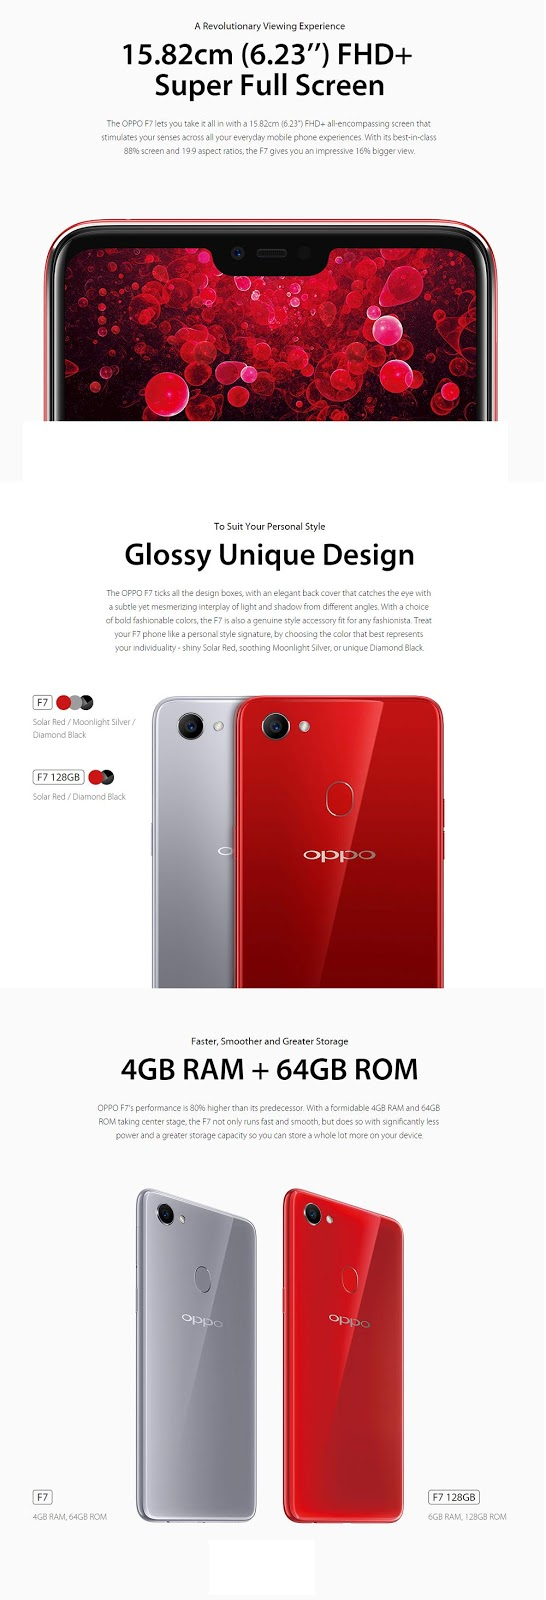 PROMO: The New Oppo F7 6 23 Is Here With FREE Olike Magic